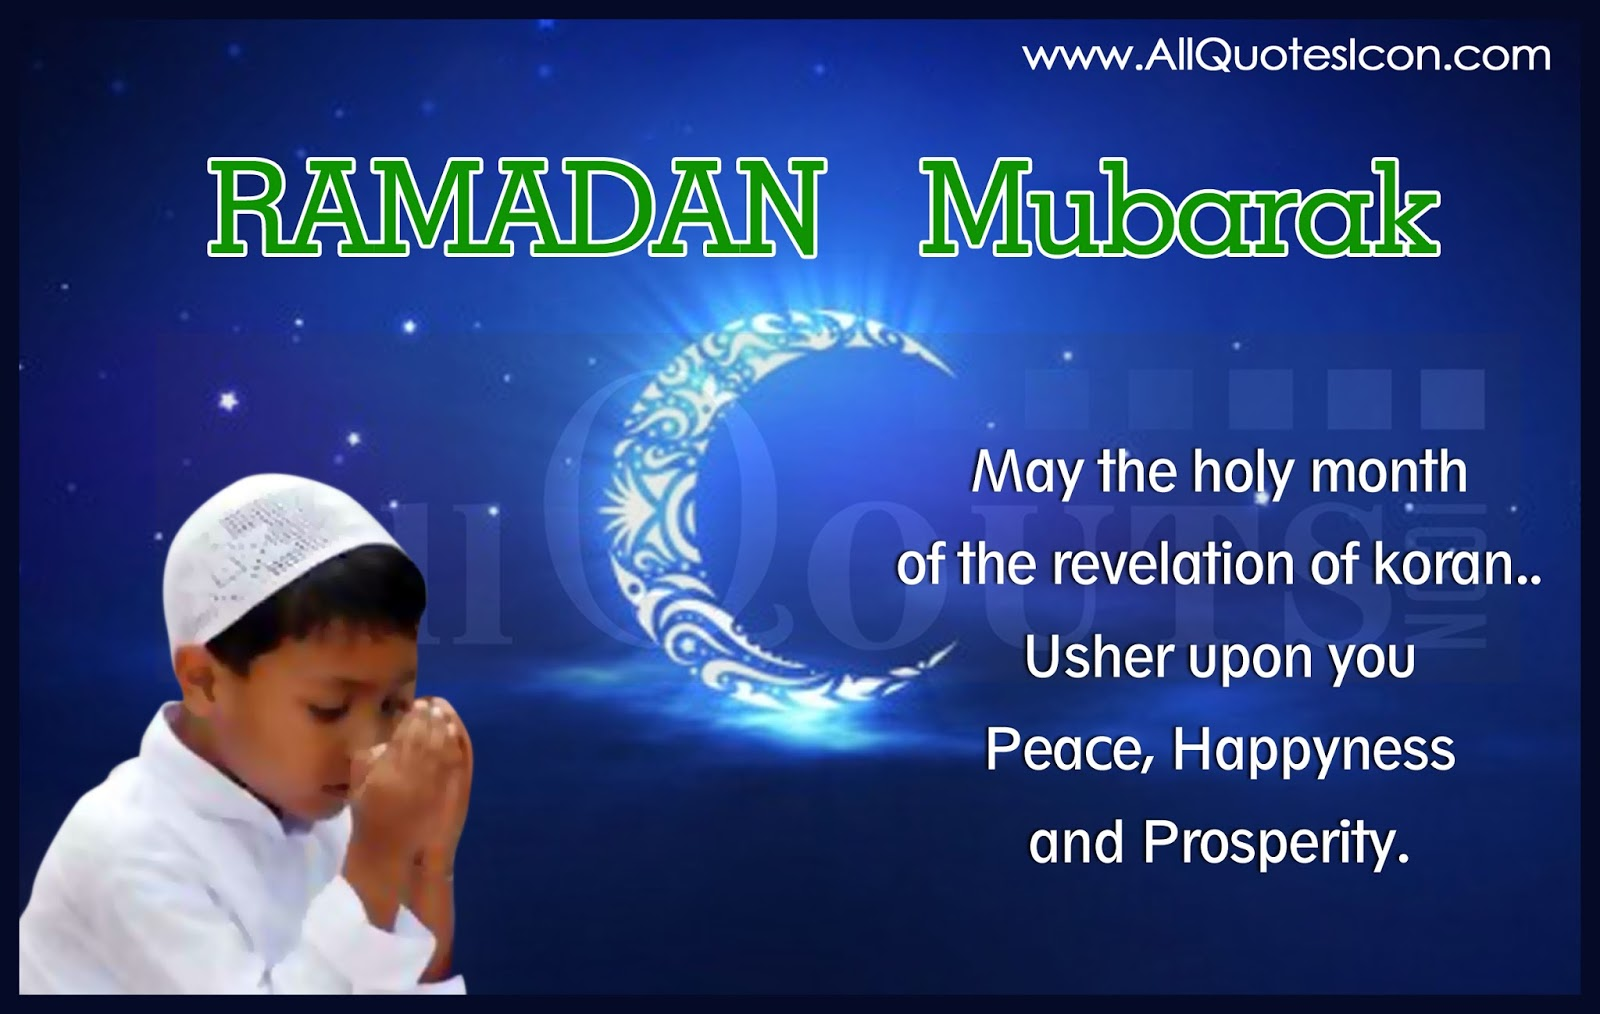 Happy Ramadan Wishes And Greetings Wallpapers Trending New Ramadan